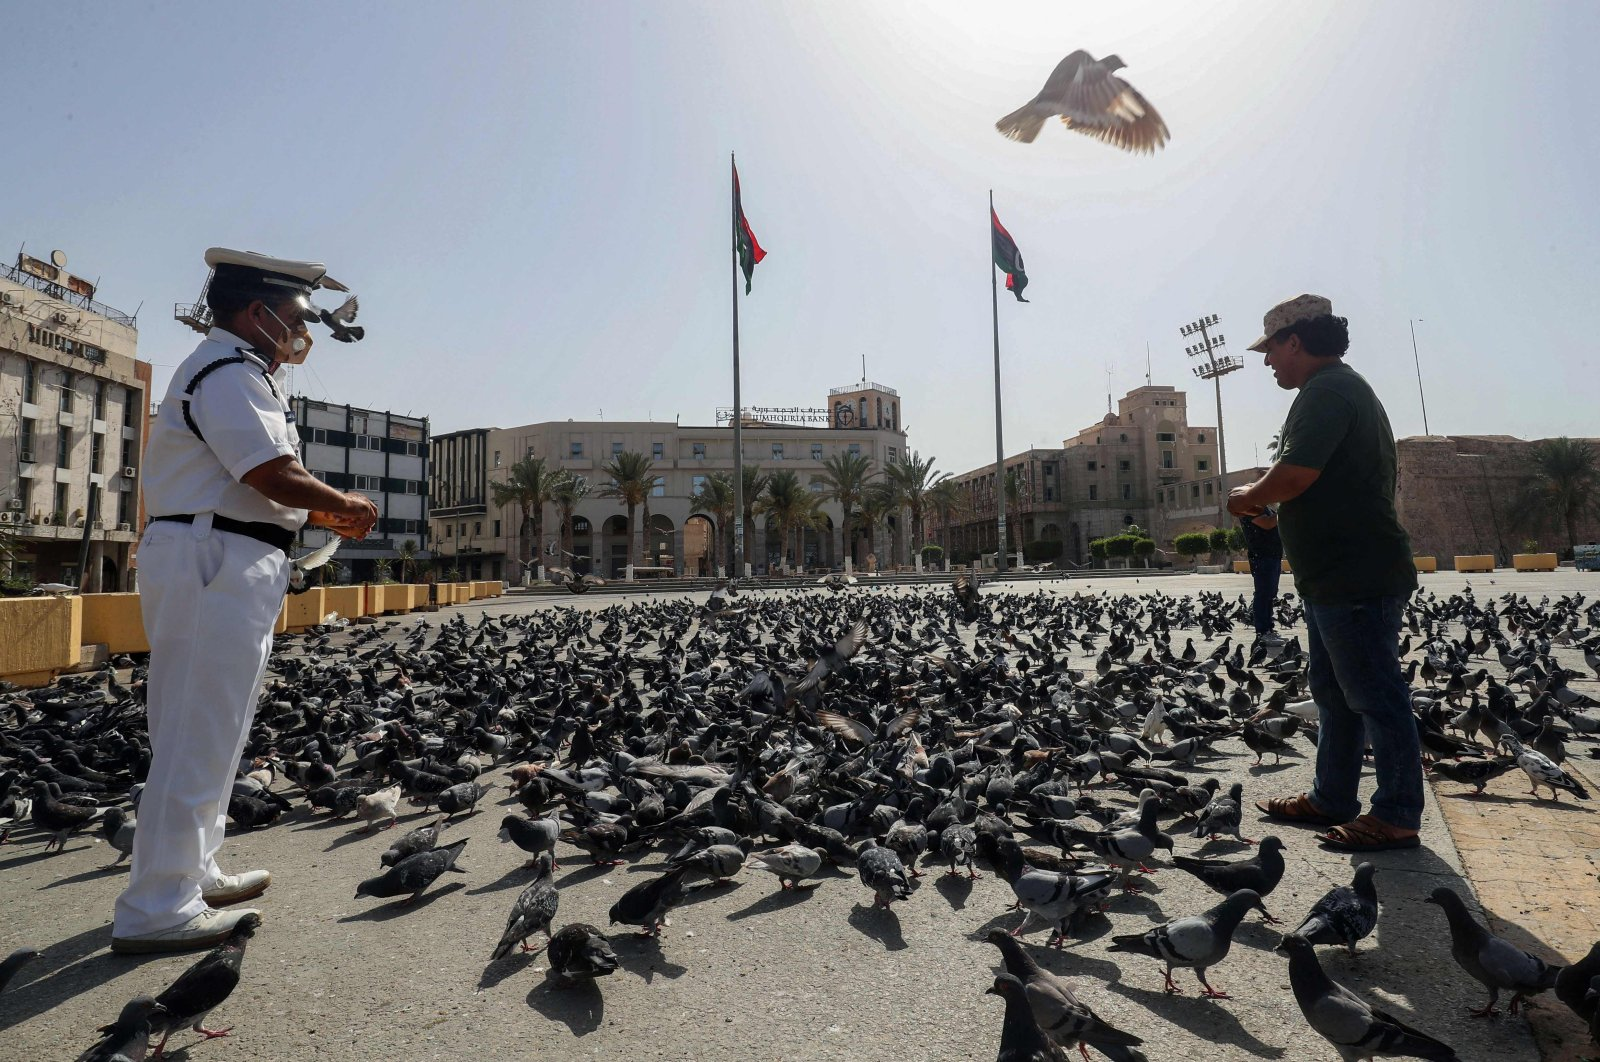 Men feed pigeons in an empty Martyrs square in downtown Tripoli, a day after authorities announced a total curfew through the weekend to mitigate the spread of COVID-19, Tripoli, Libya, August, 7, 2021. (Photo by Mahmud TURKIA / AFP)